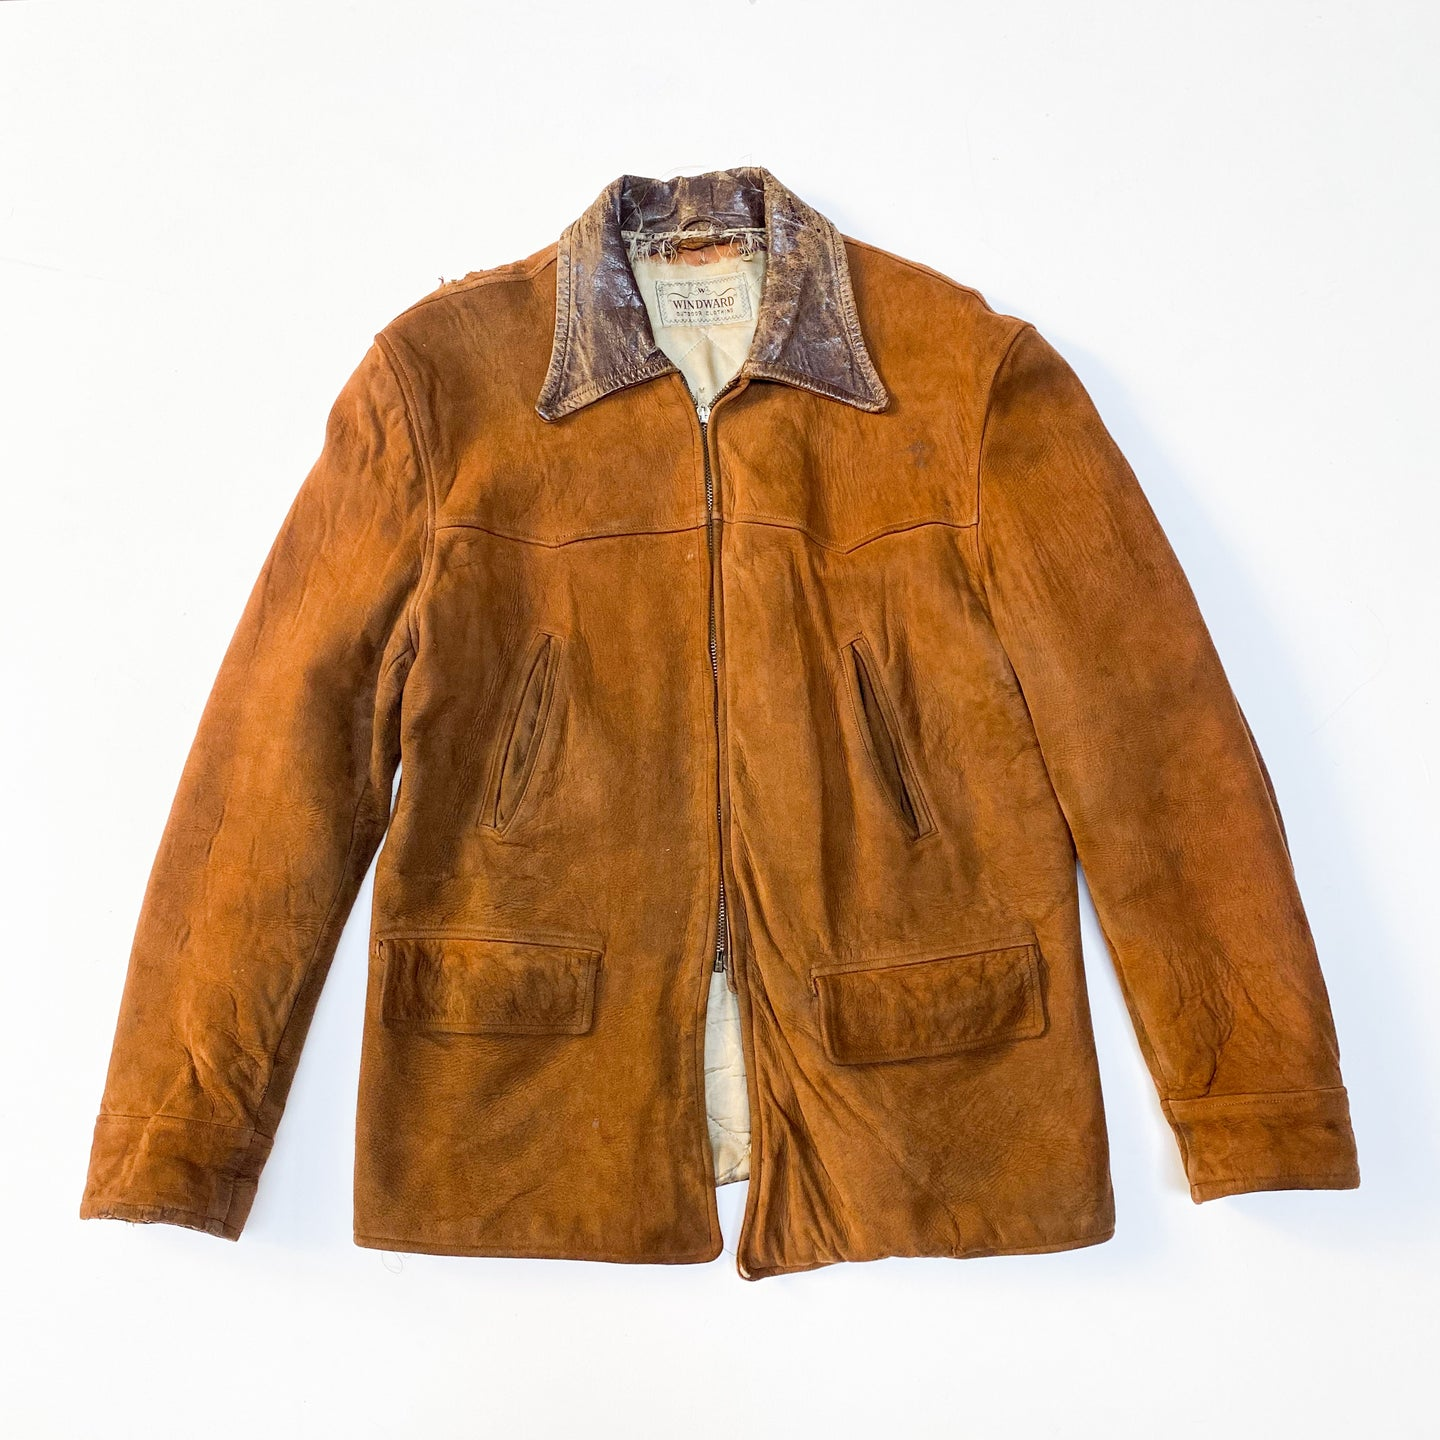 60s Windward Suede Leather Jacket